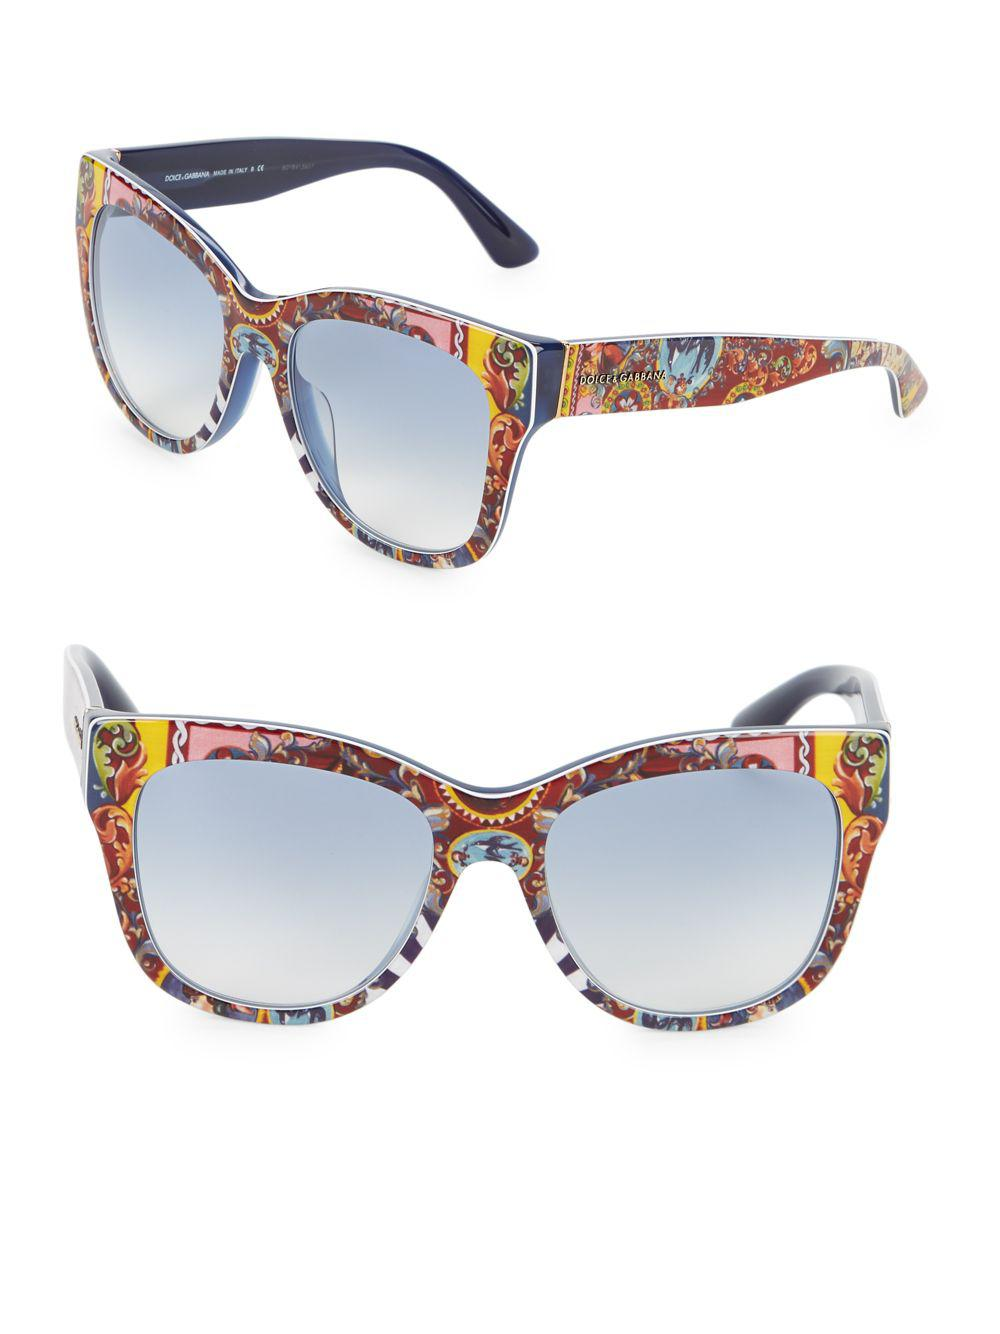 98e3981f66 Lyst - Dolce   Gabbana Multicolored-print Wayfarer Sunglasses in ...